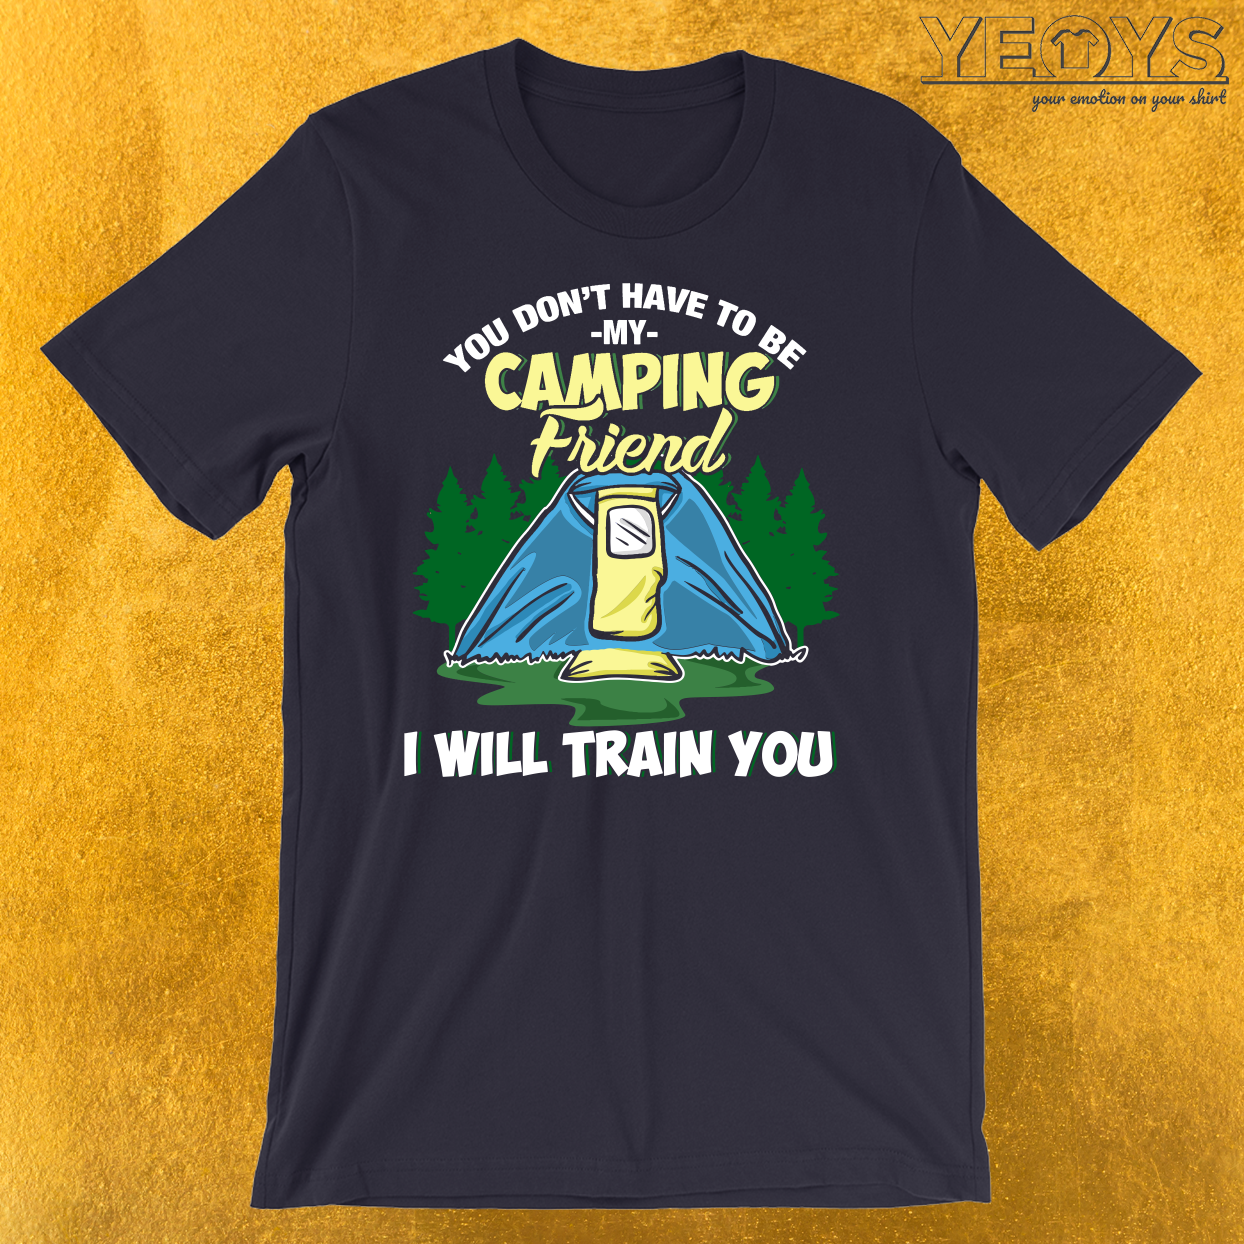 You Don't Have To Be Crazy To Be My Camping Friend T-Shirt